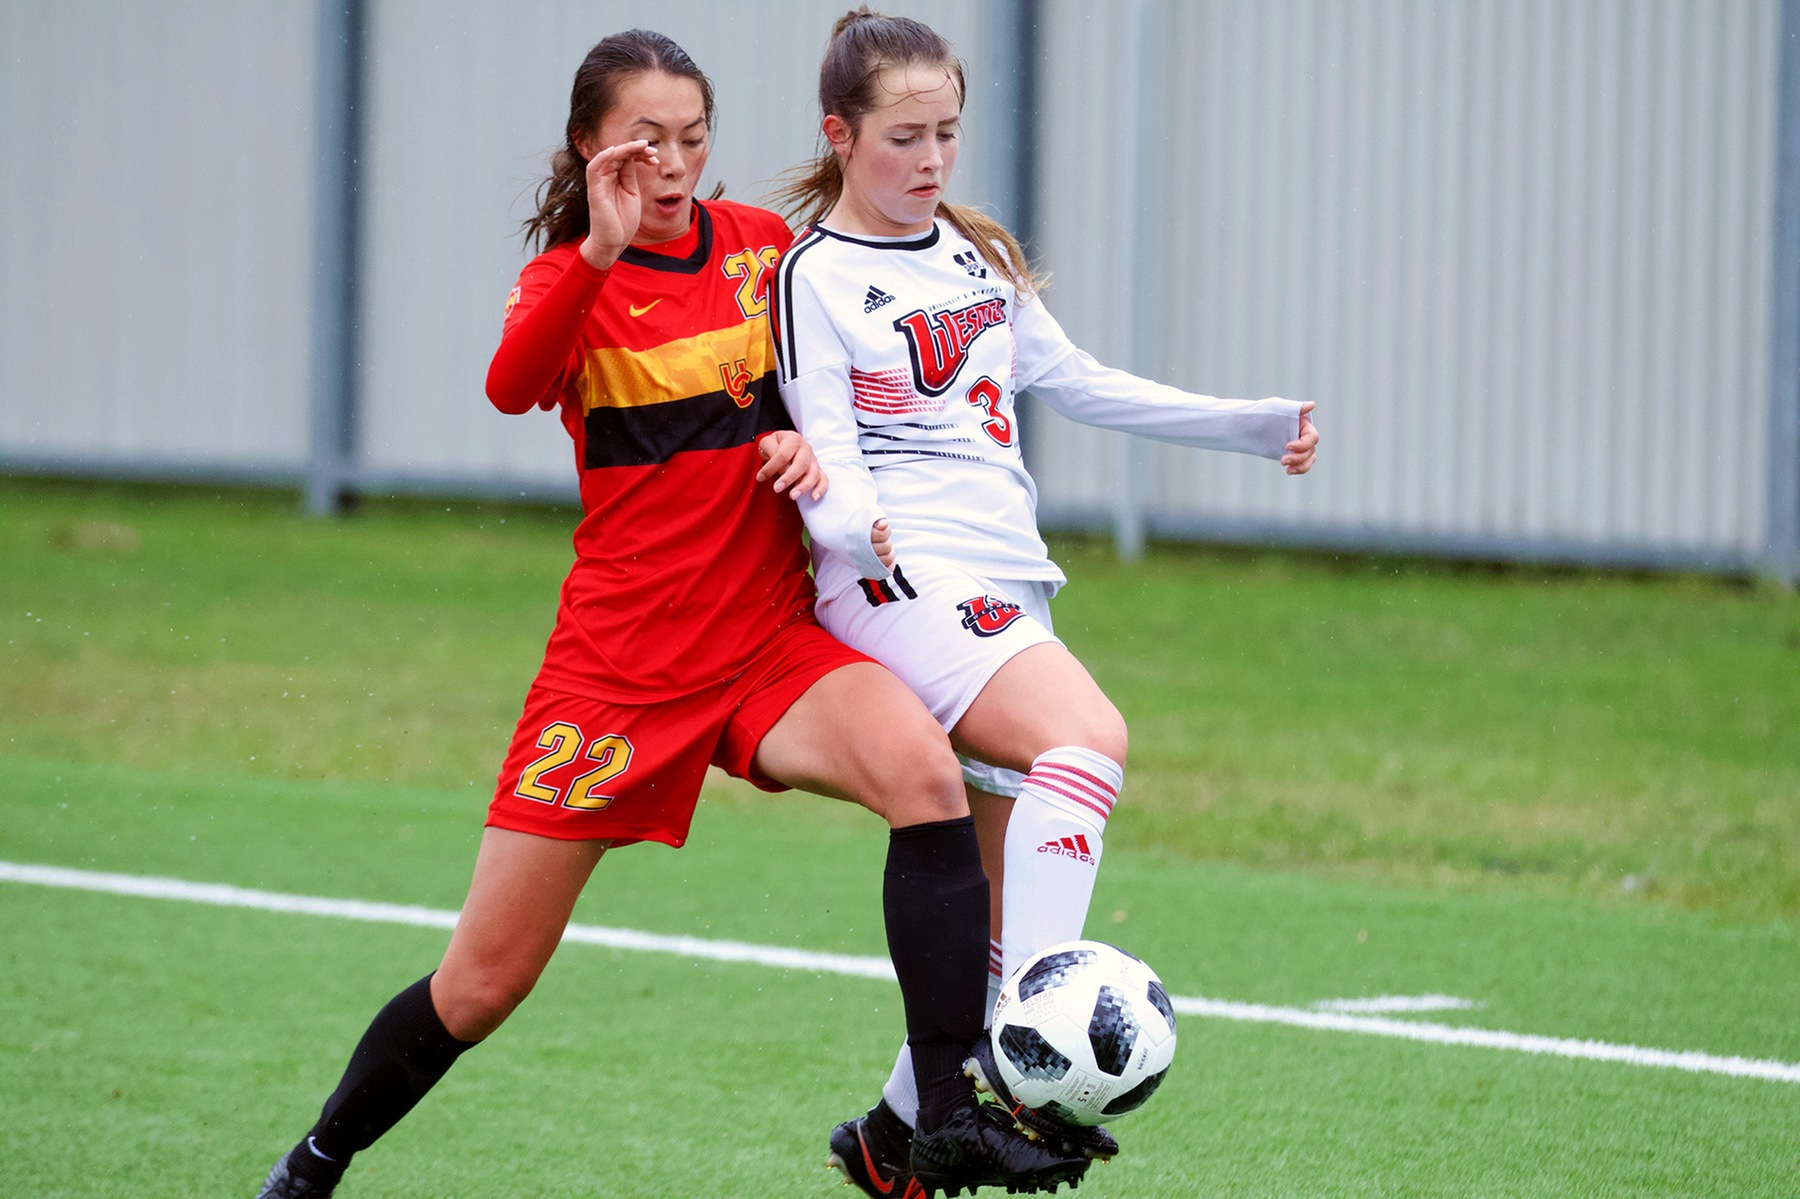 Winnipeg's Alycia Mann (right) battles for a ball with Calgary's Maiya Lee during action Saturday afternoon at the Ralph Cantafio Soccer Complex. (David Larkins/Wesmen Athletics)